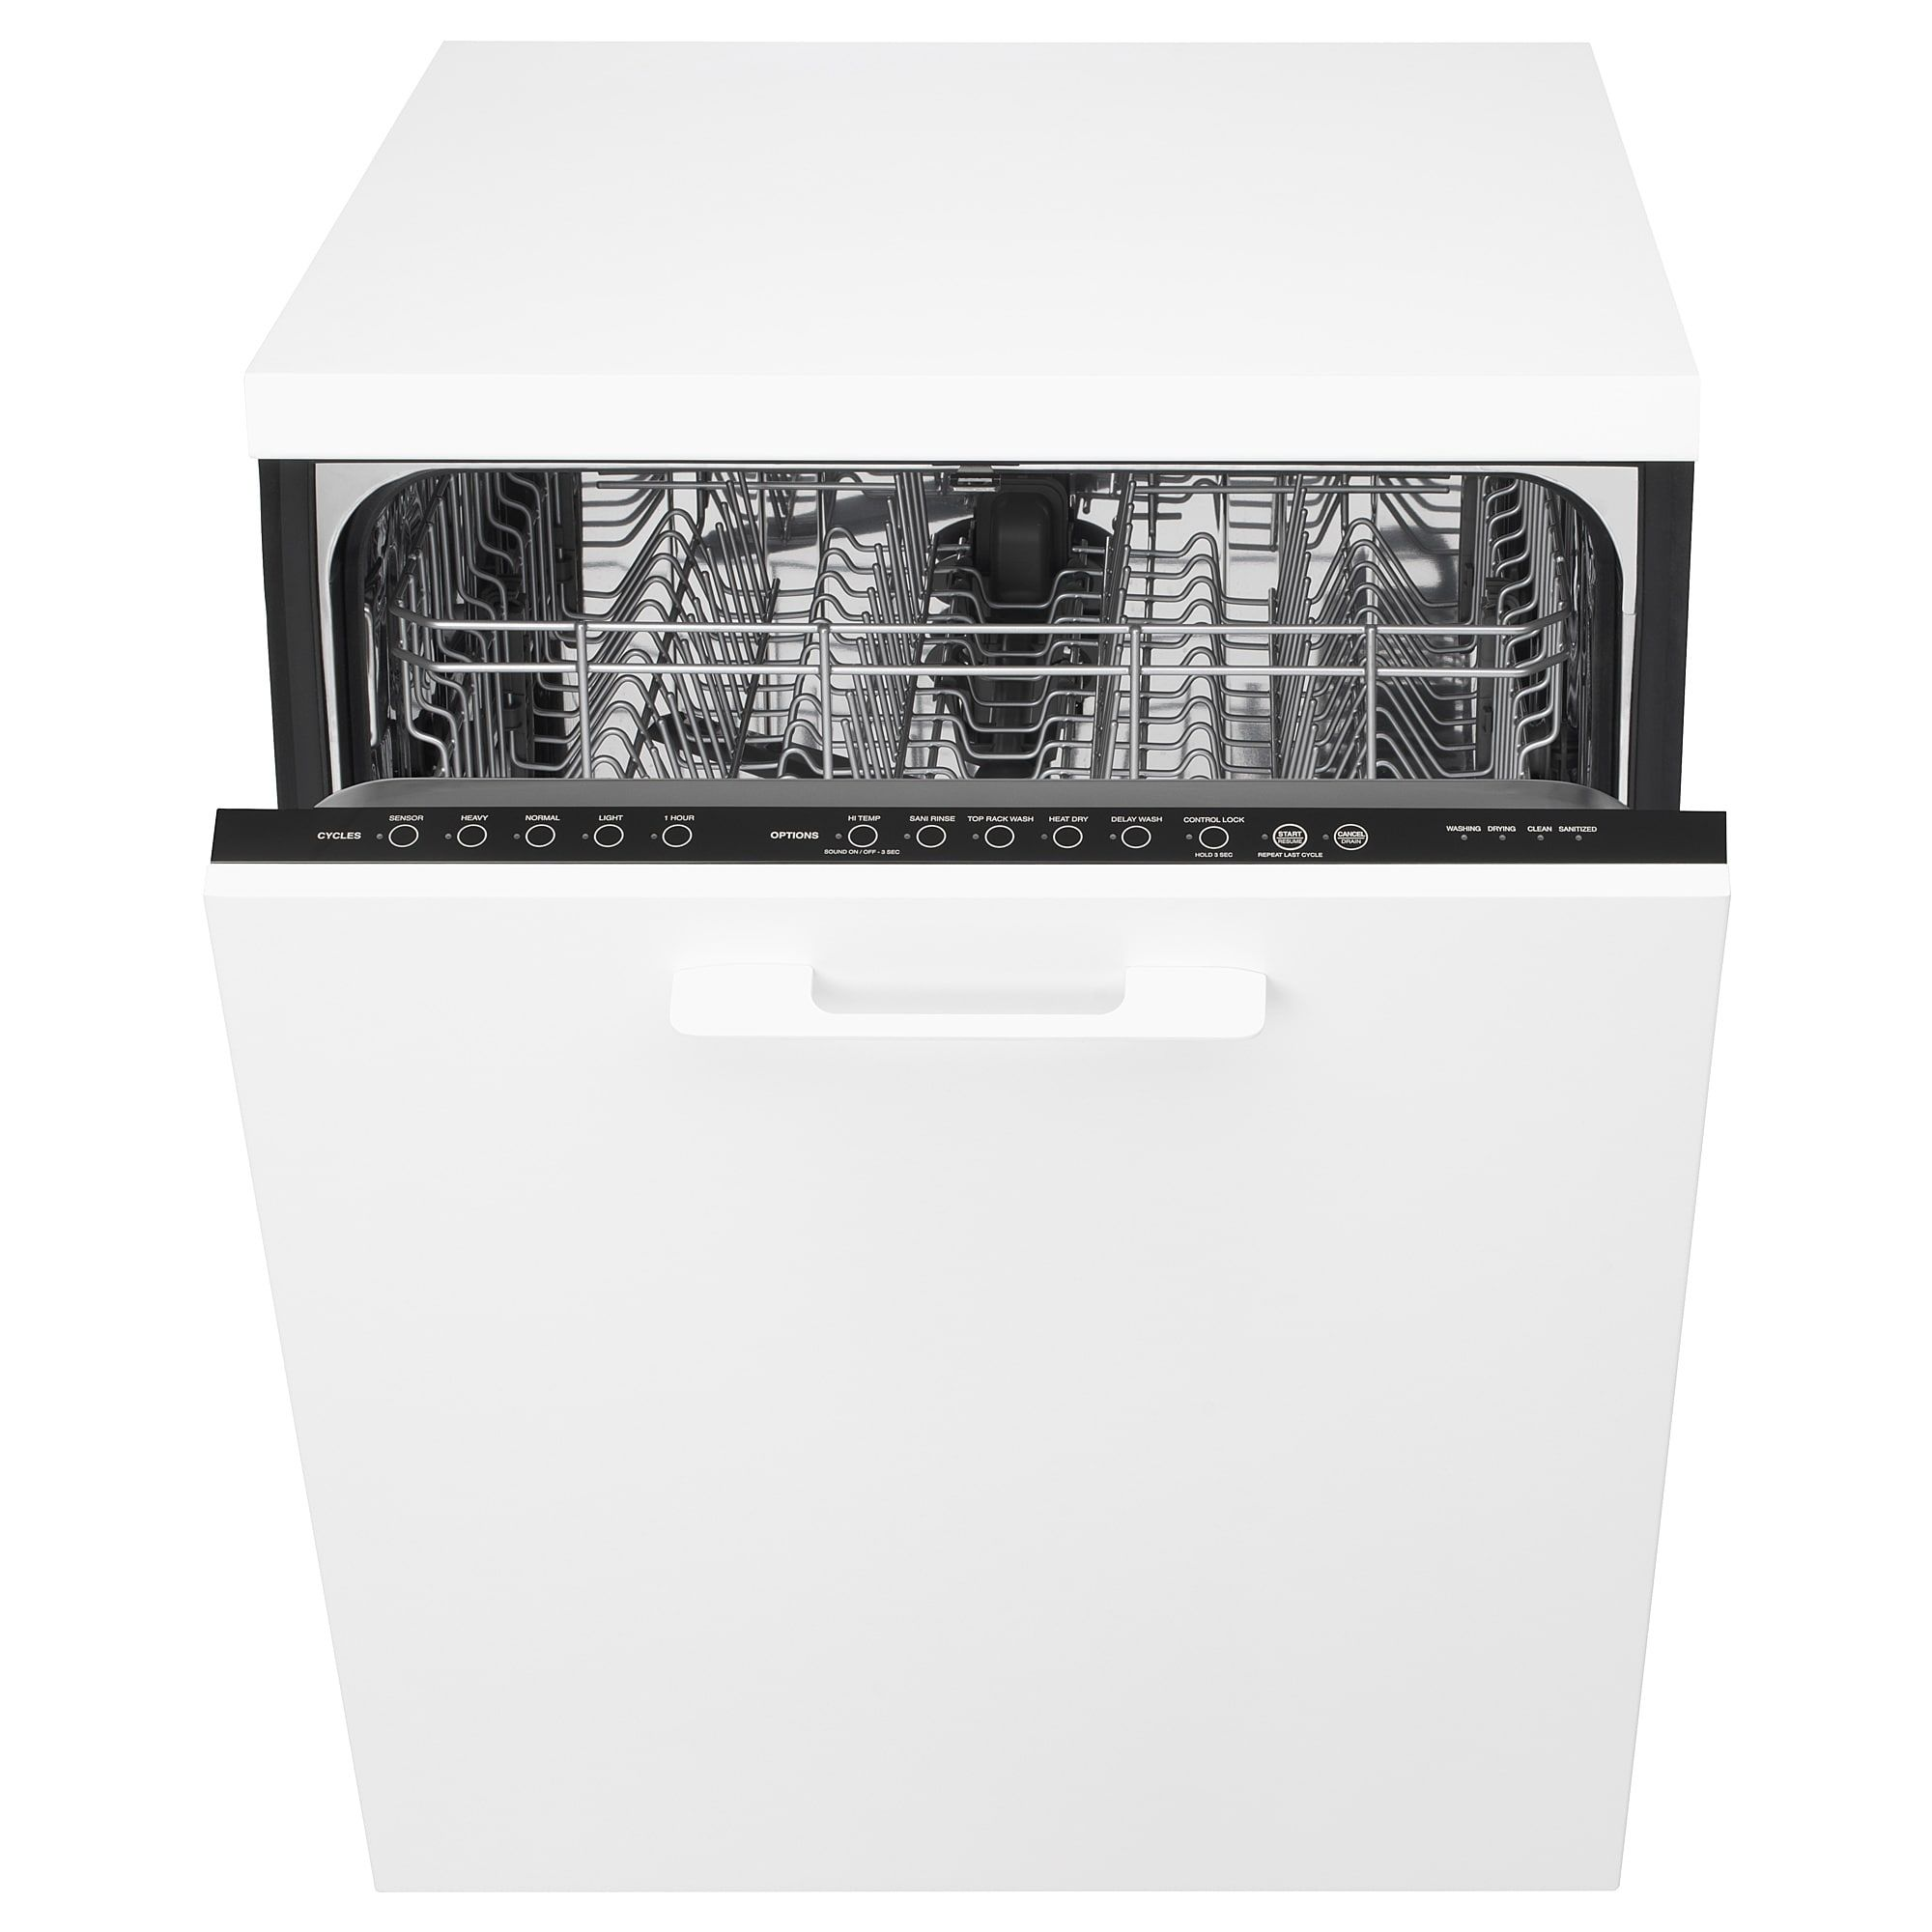 Spolad Built In Dishwasher Ikea Built In Dishwasher